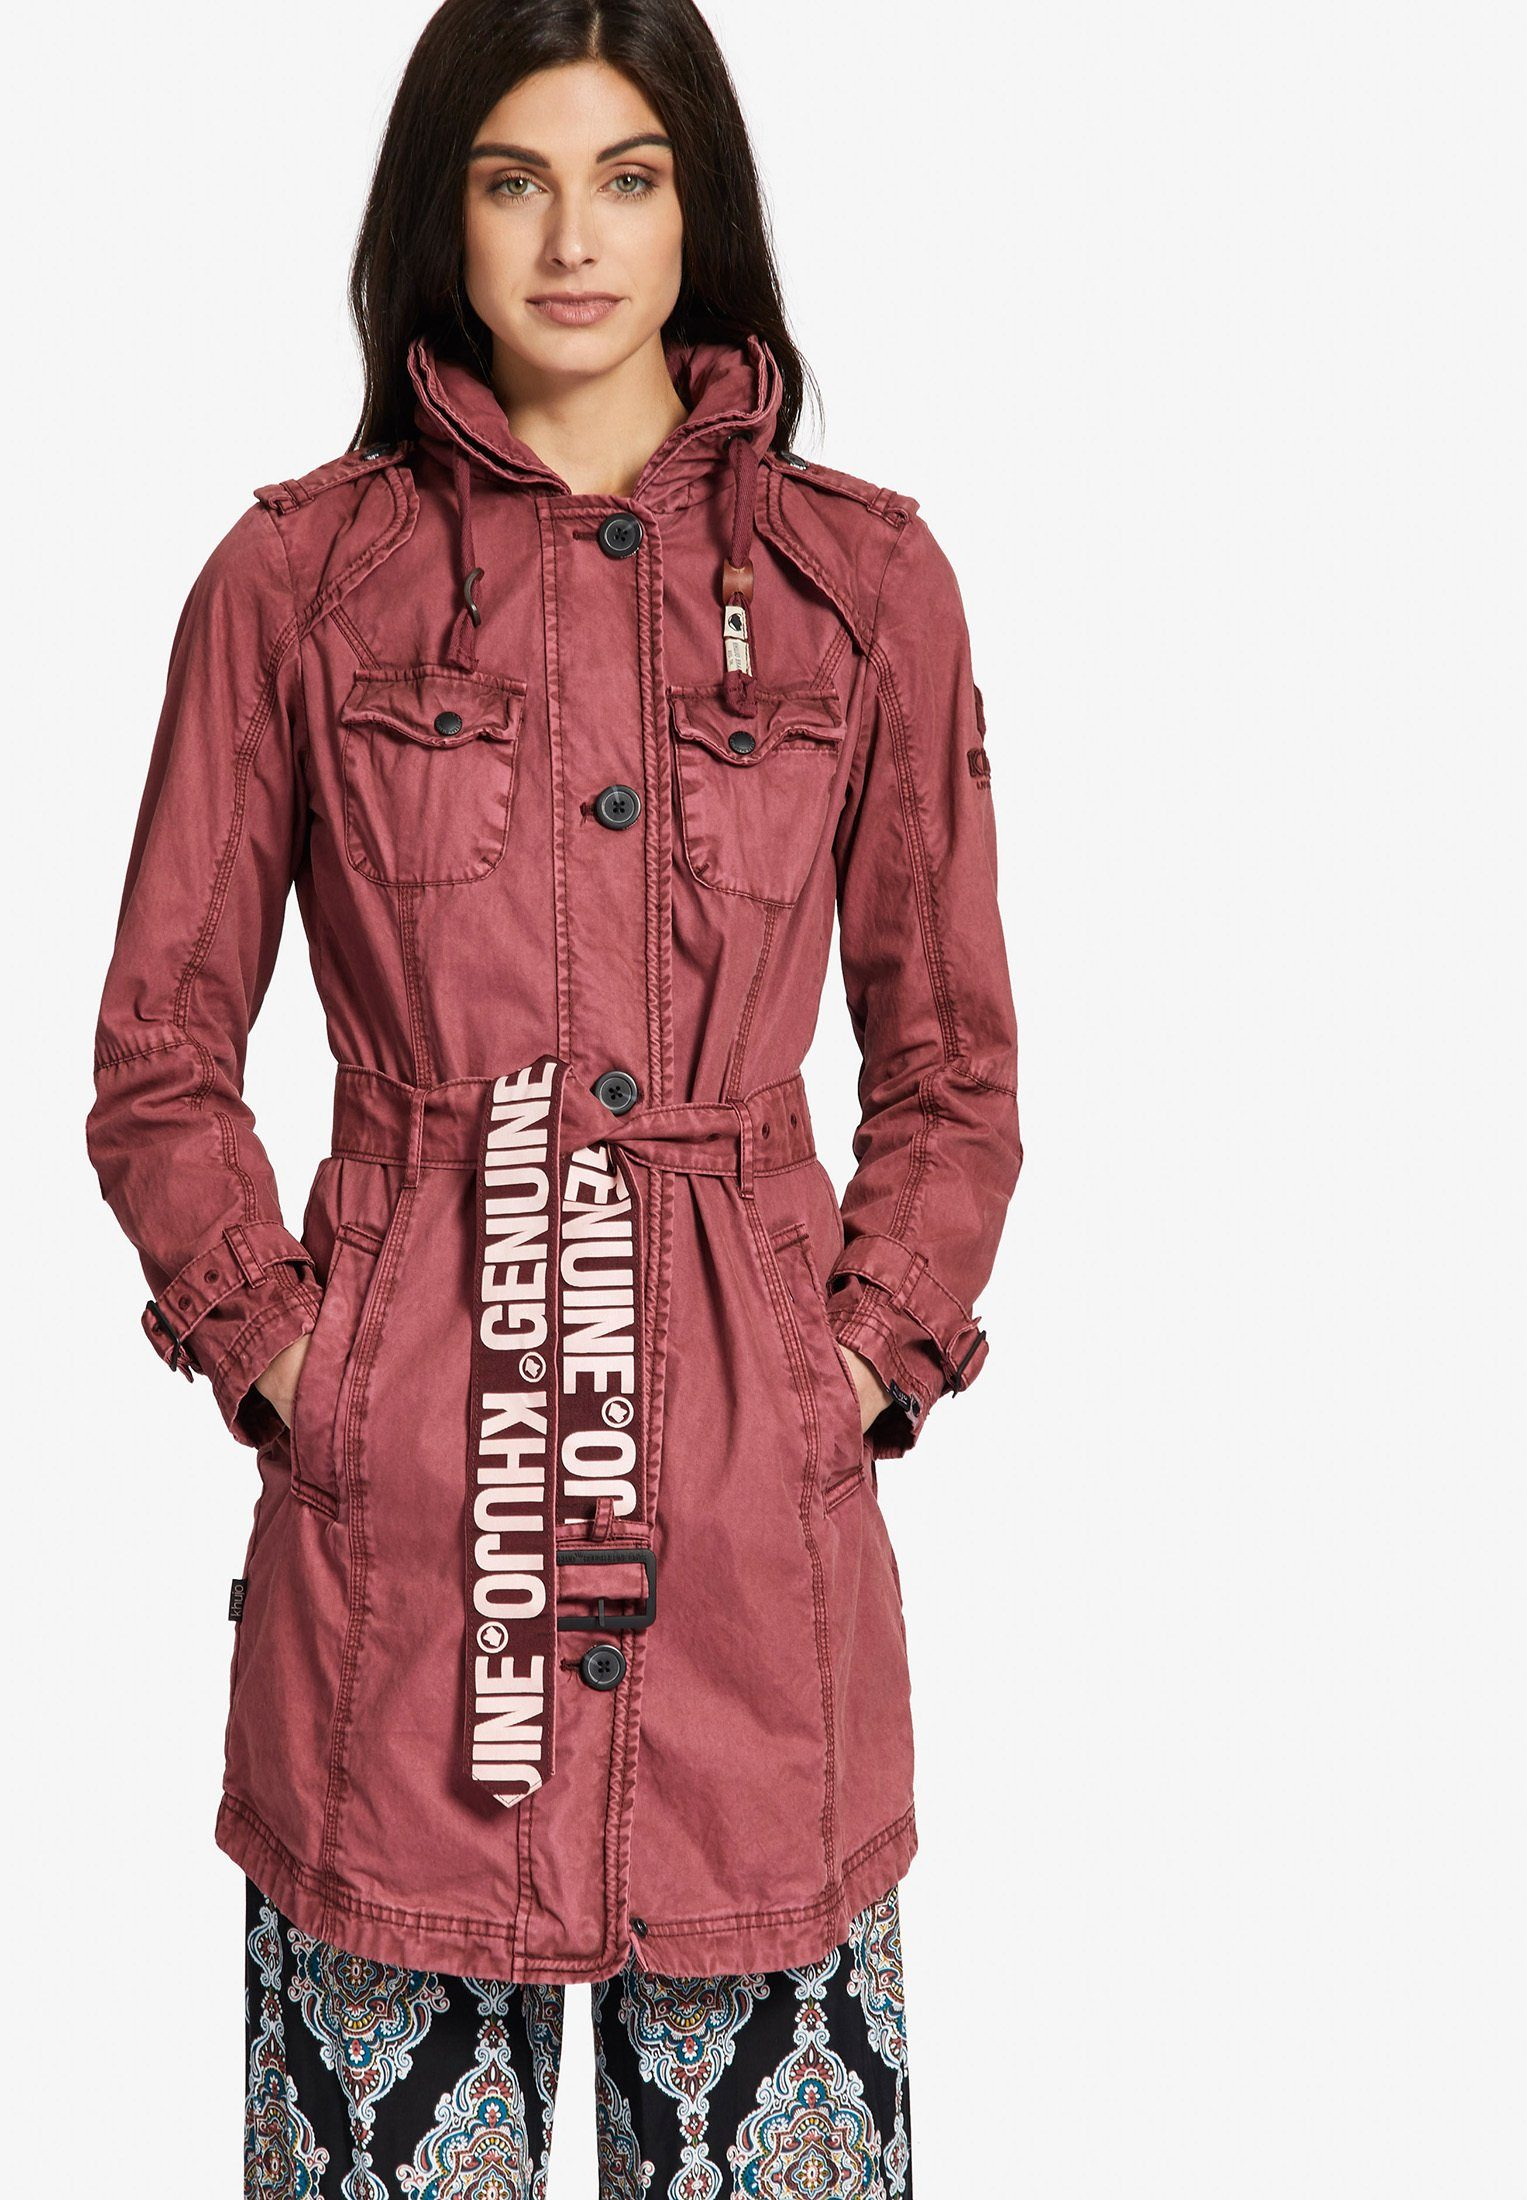 Trenchcoat%2c mit abnehmbarer Kapuze%2c rot%2c rot In Linea